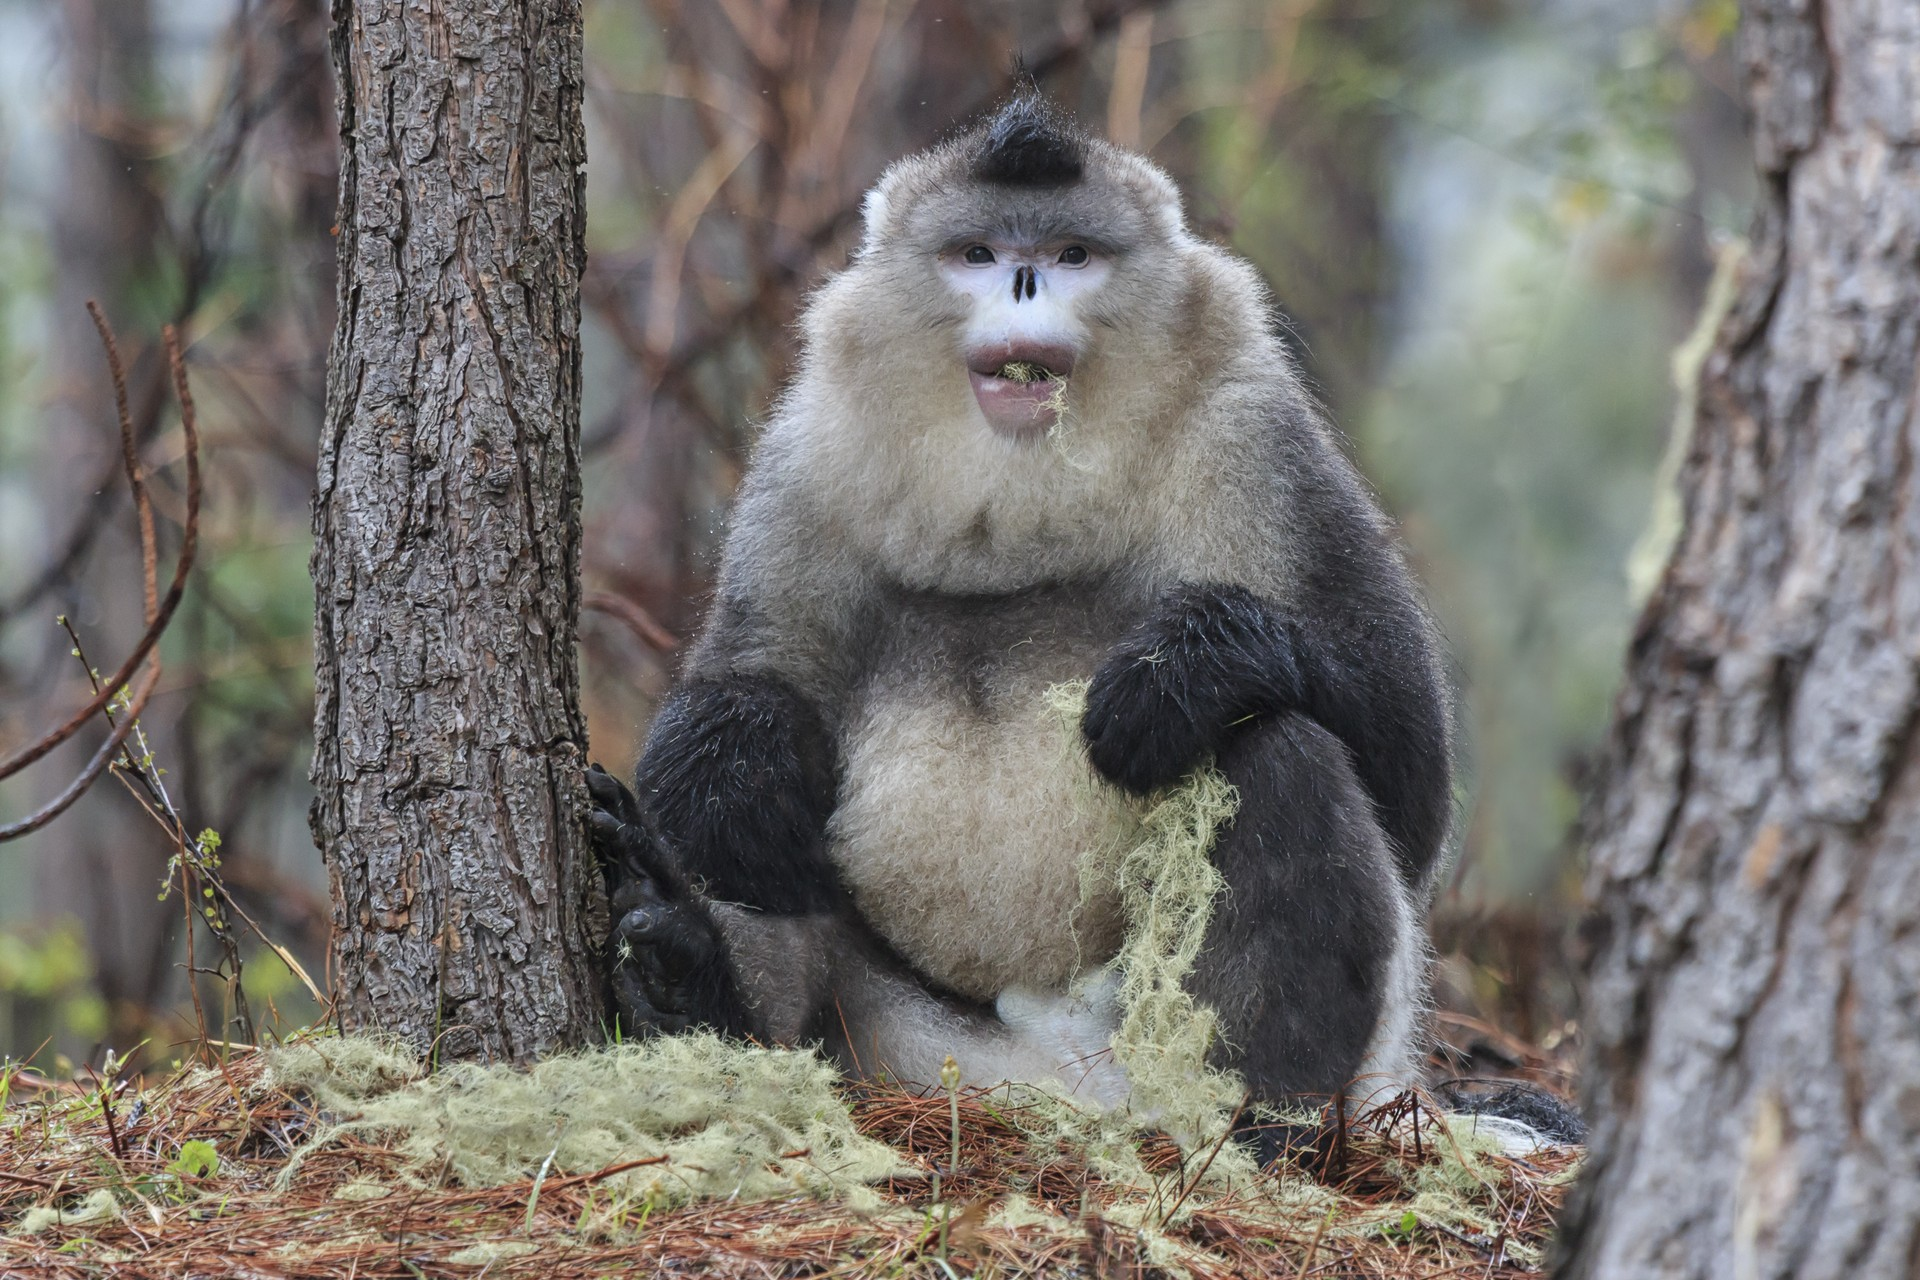 Black snub nosed monkey in China